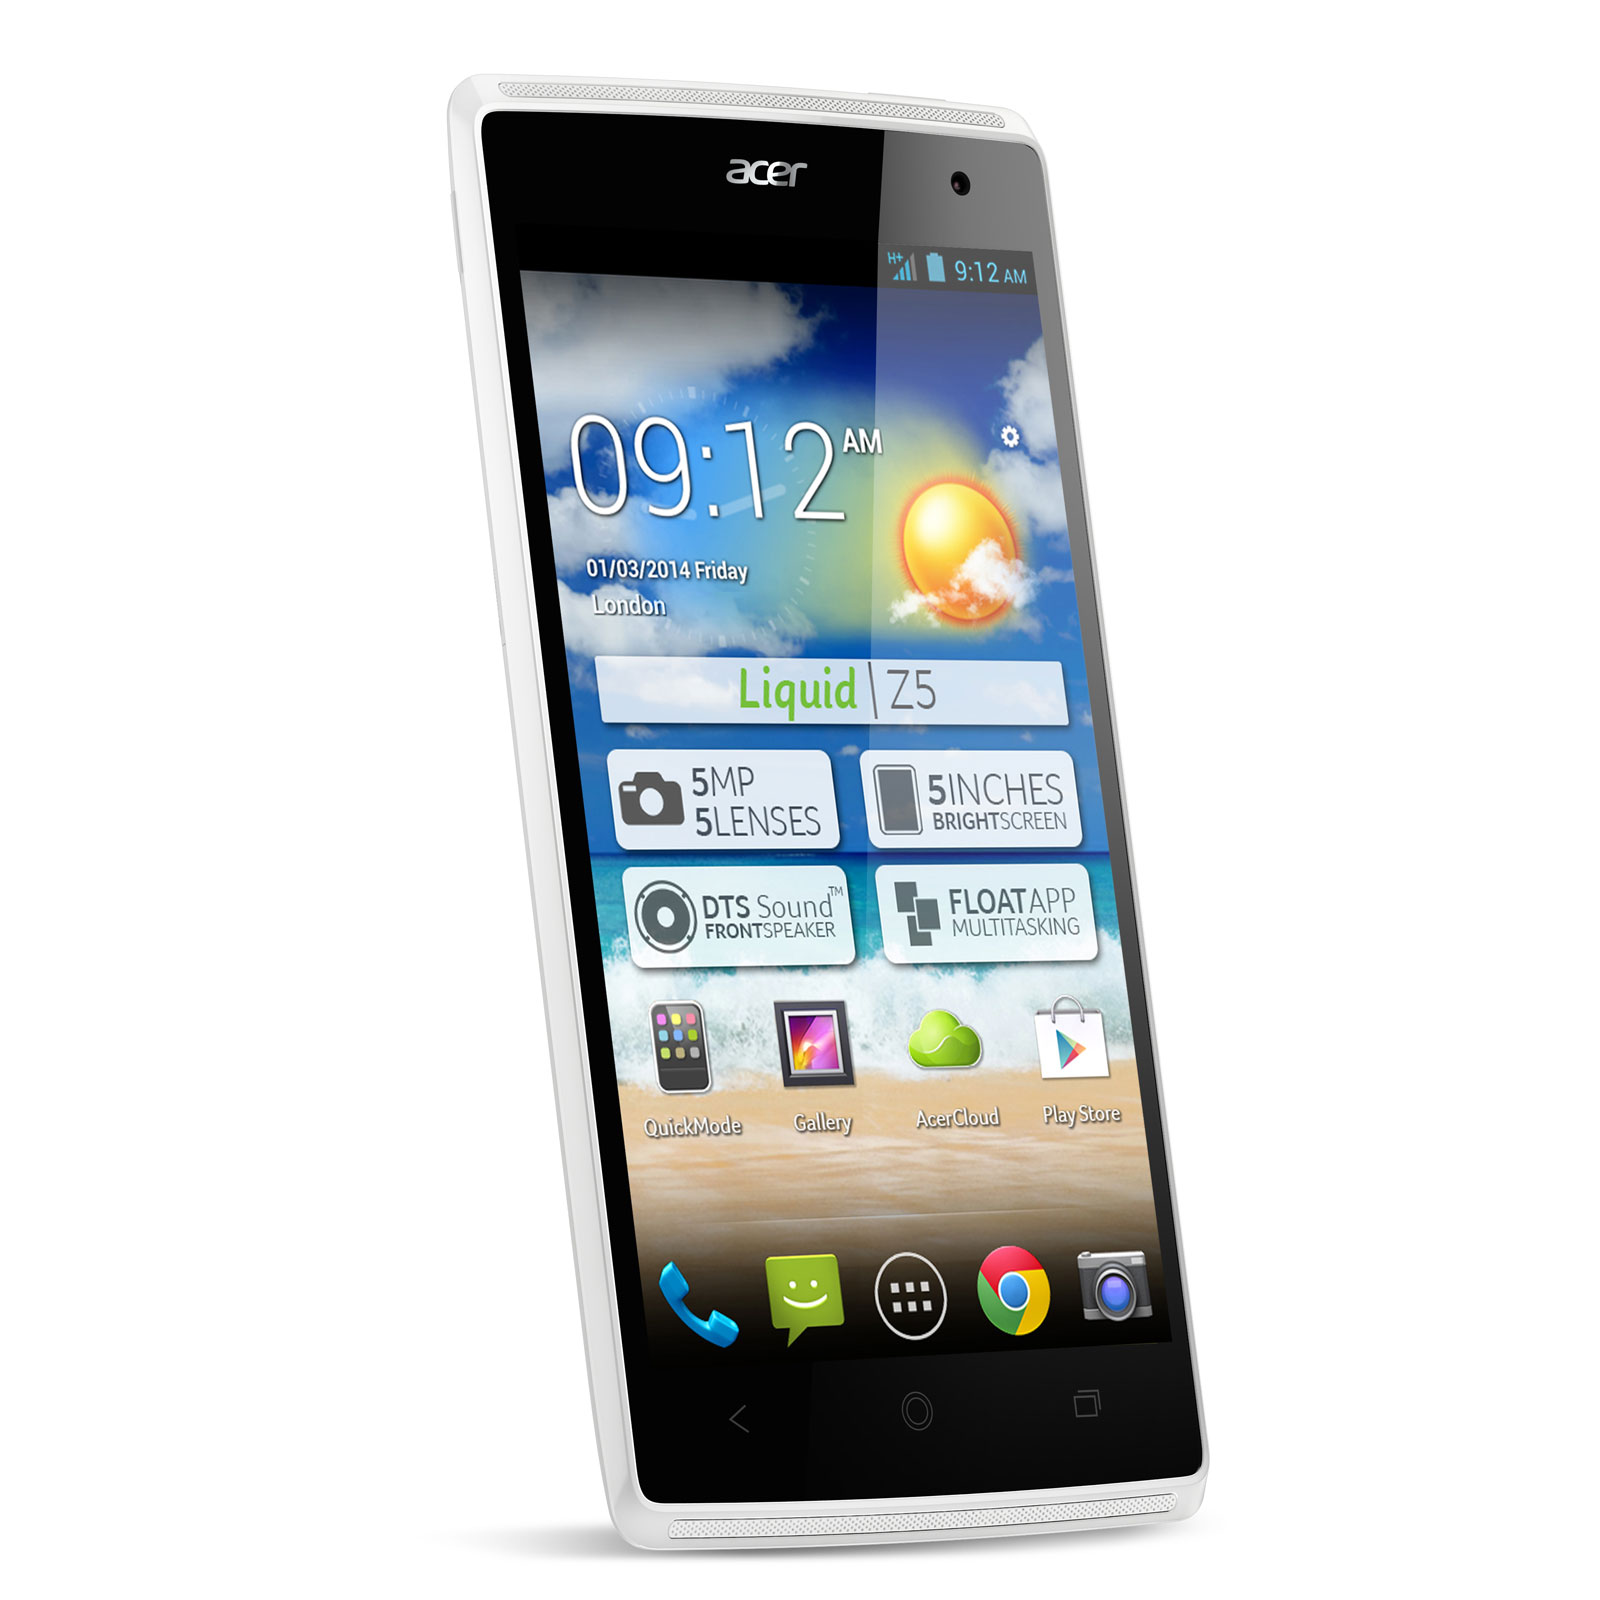 acer liquid z5 duo blanc mobile smartphone acer sur. Black Bedroom Furniture Sets. Home Design Ideas